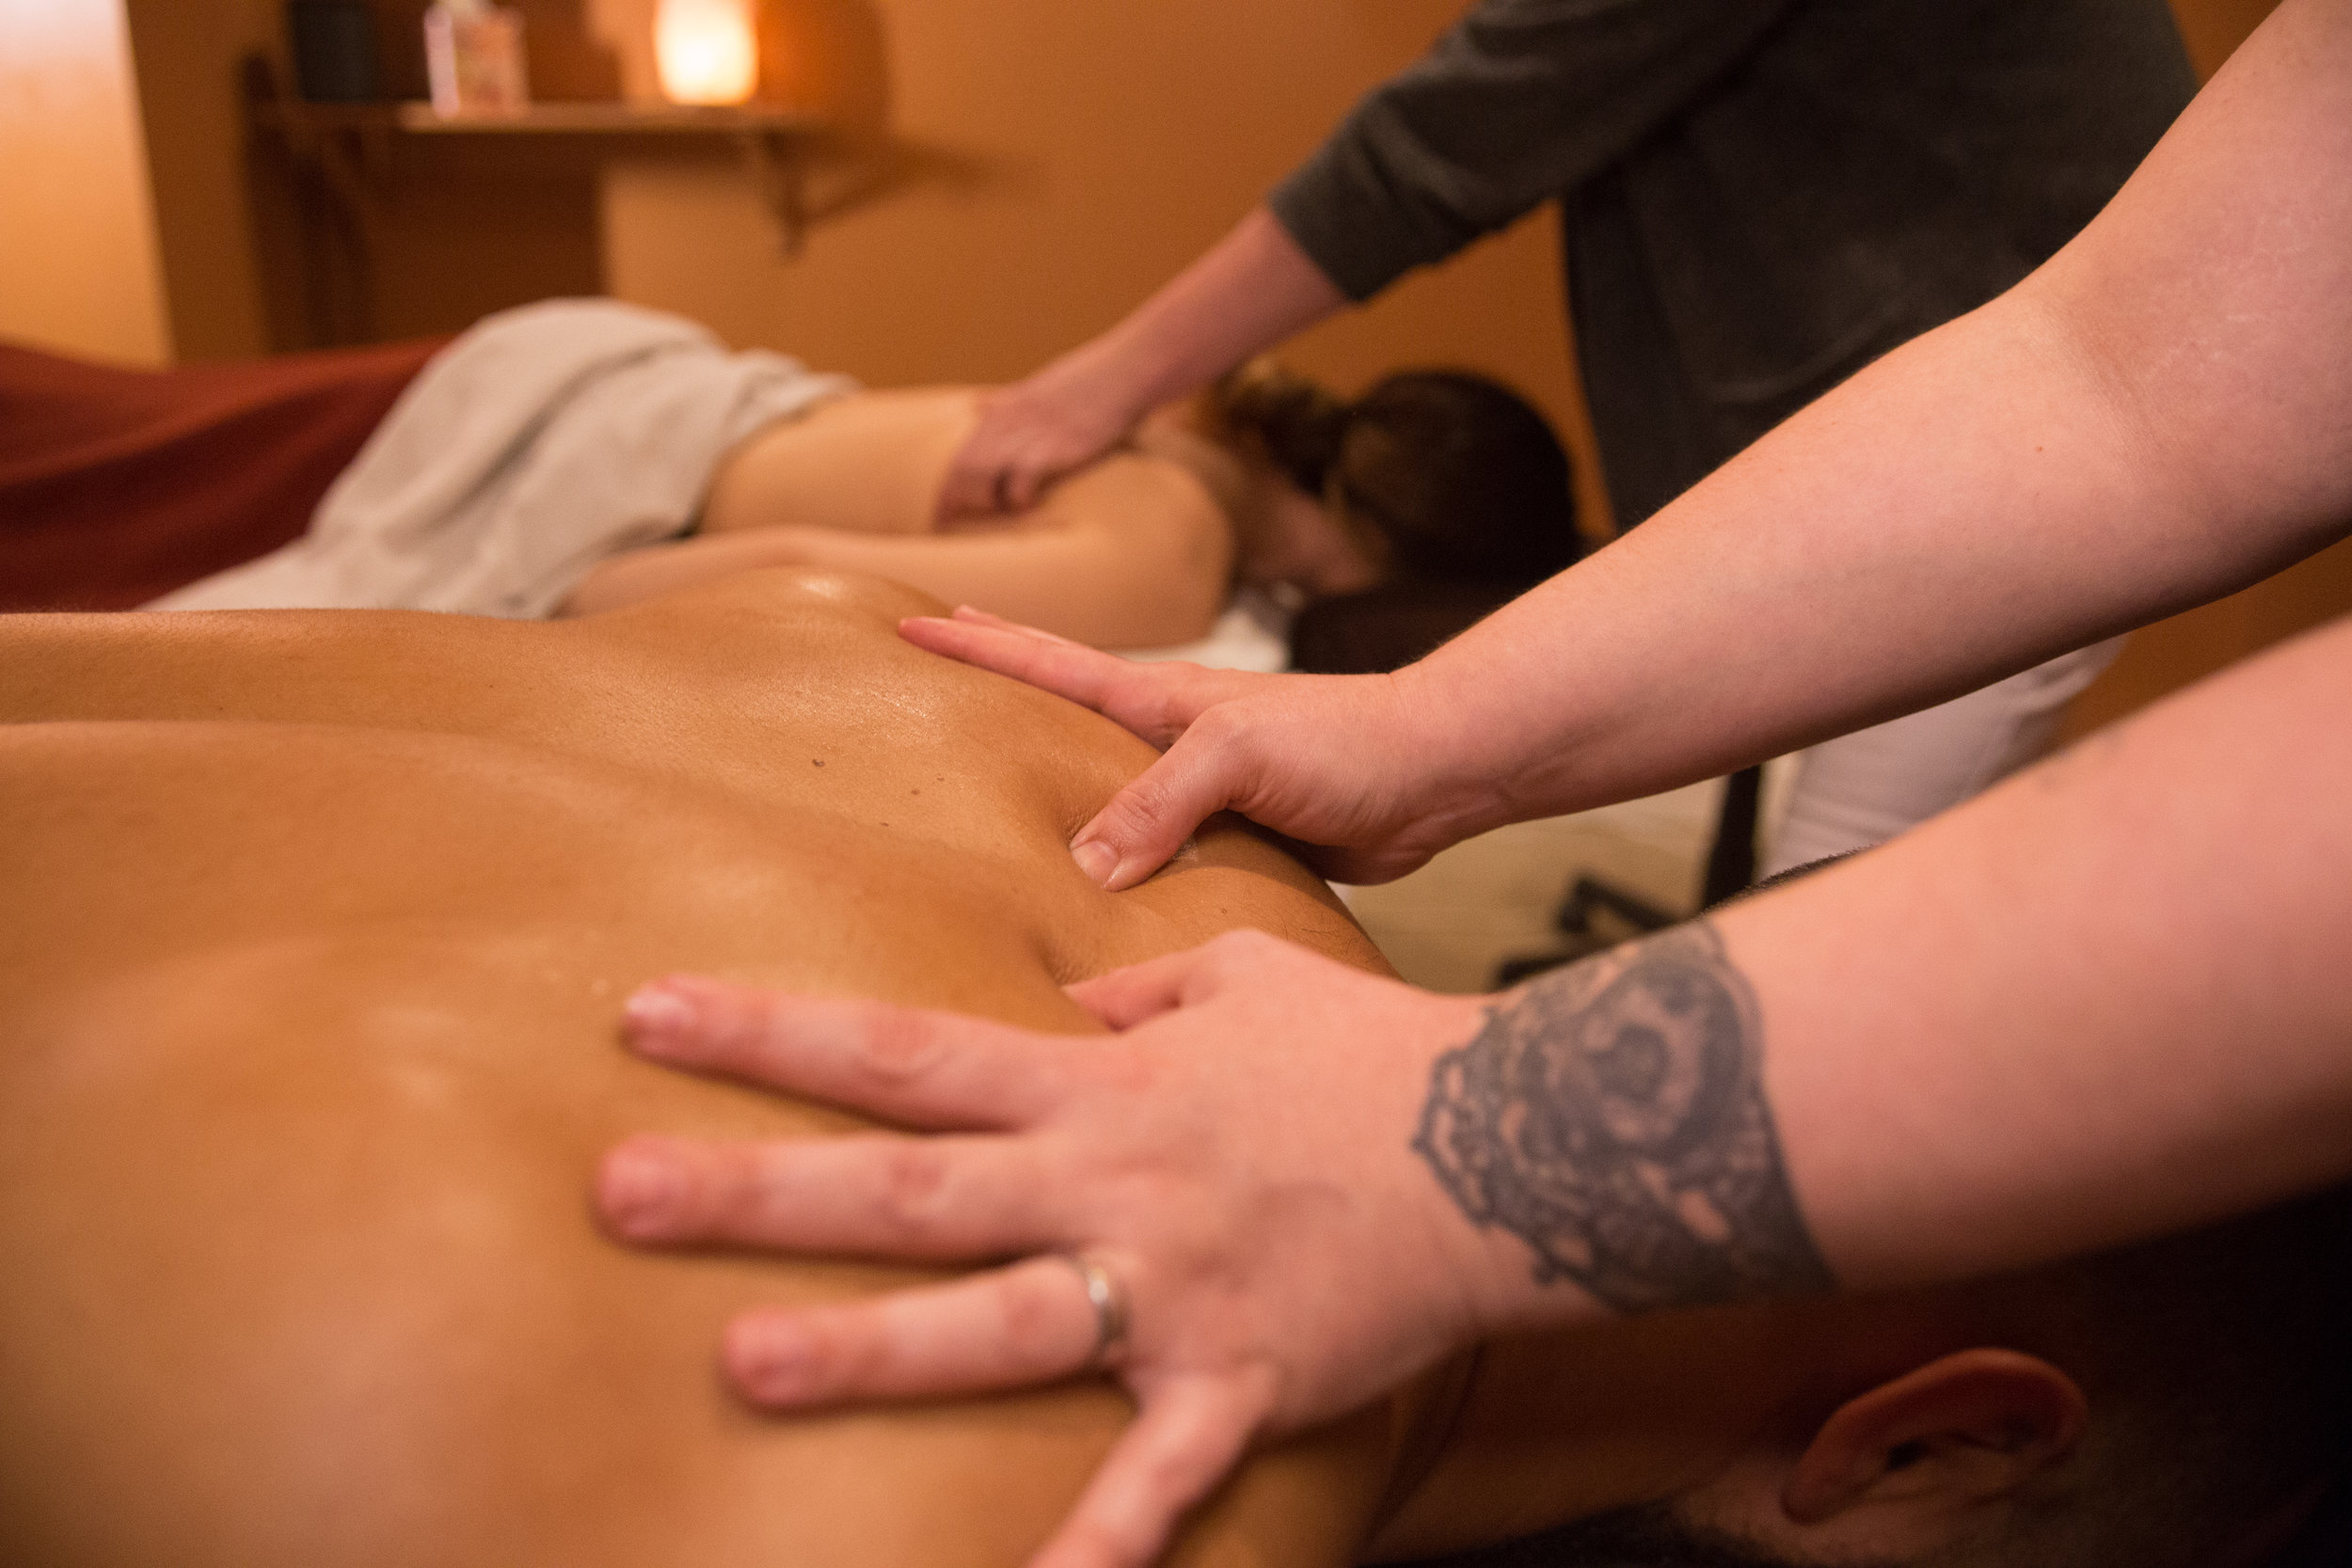 COUPLES PACKAGE   Double the pleasure of a full-on spa package with your significant other.  1-hour massage & 1-hour facial for two: $280  30-minute massage & 30-minute foot scrub for two: $160  1-hour hot stone massage, 1-hour facial & 30-minute foot scrub for two: $400